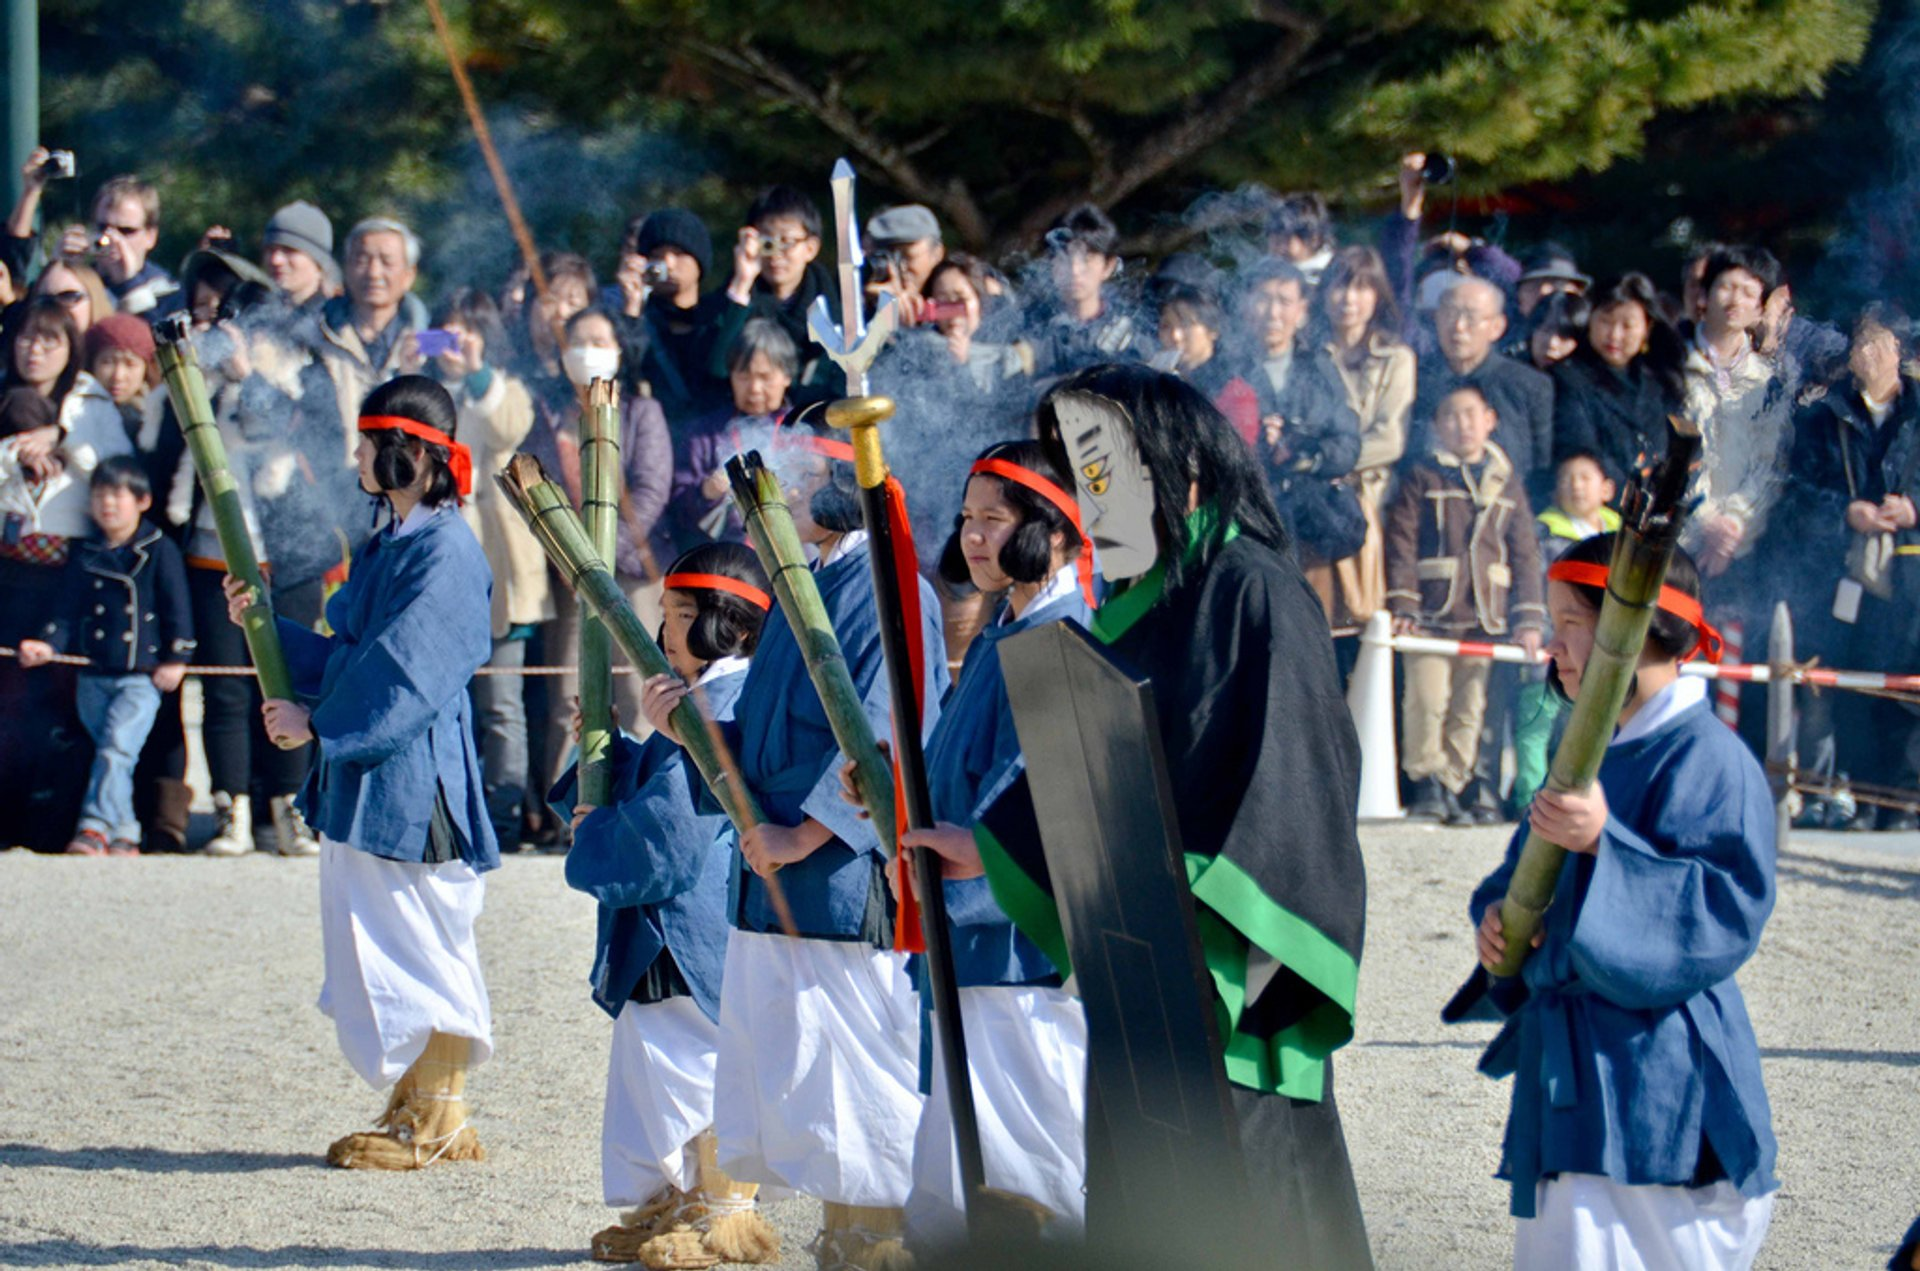 Best time to see Setsubun in Japan